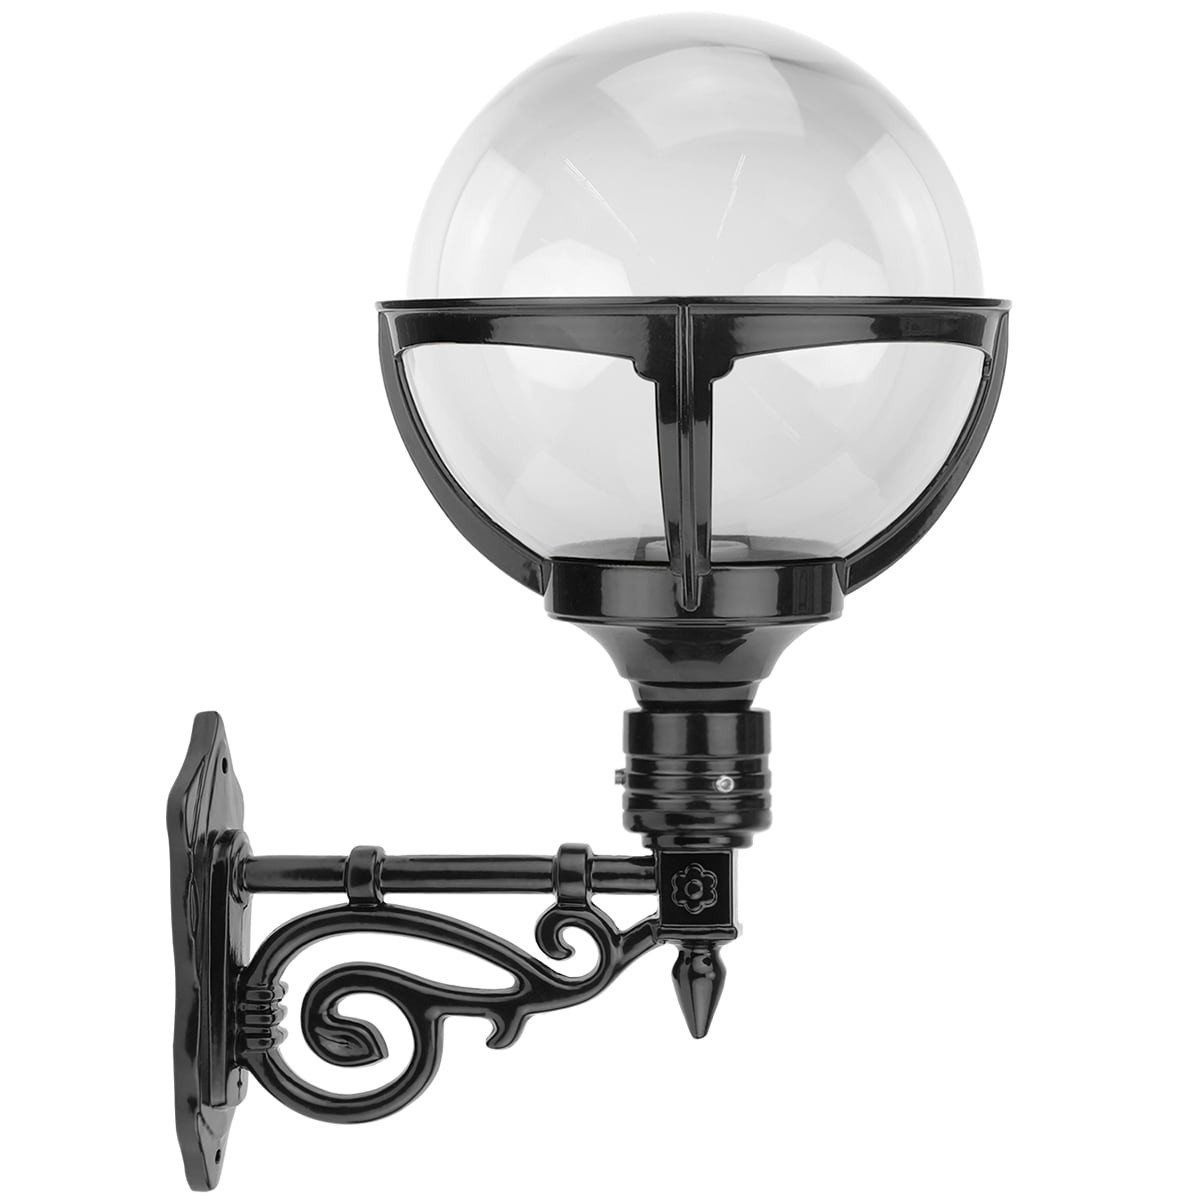 Outdoor Lamps Timeless Rustic Sphere lamp clear glass Loosdrecht - 50 cm